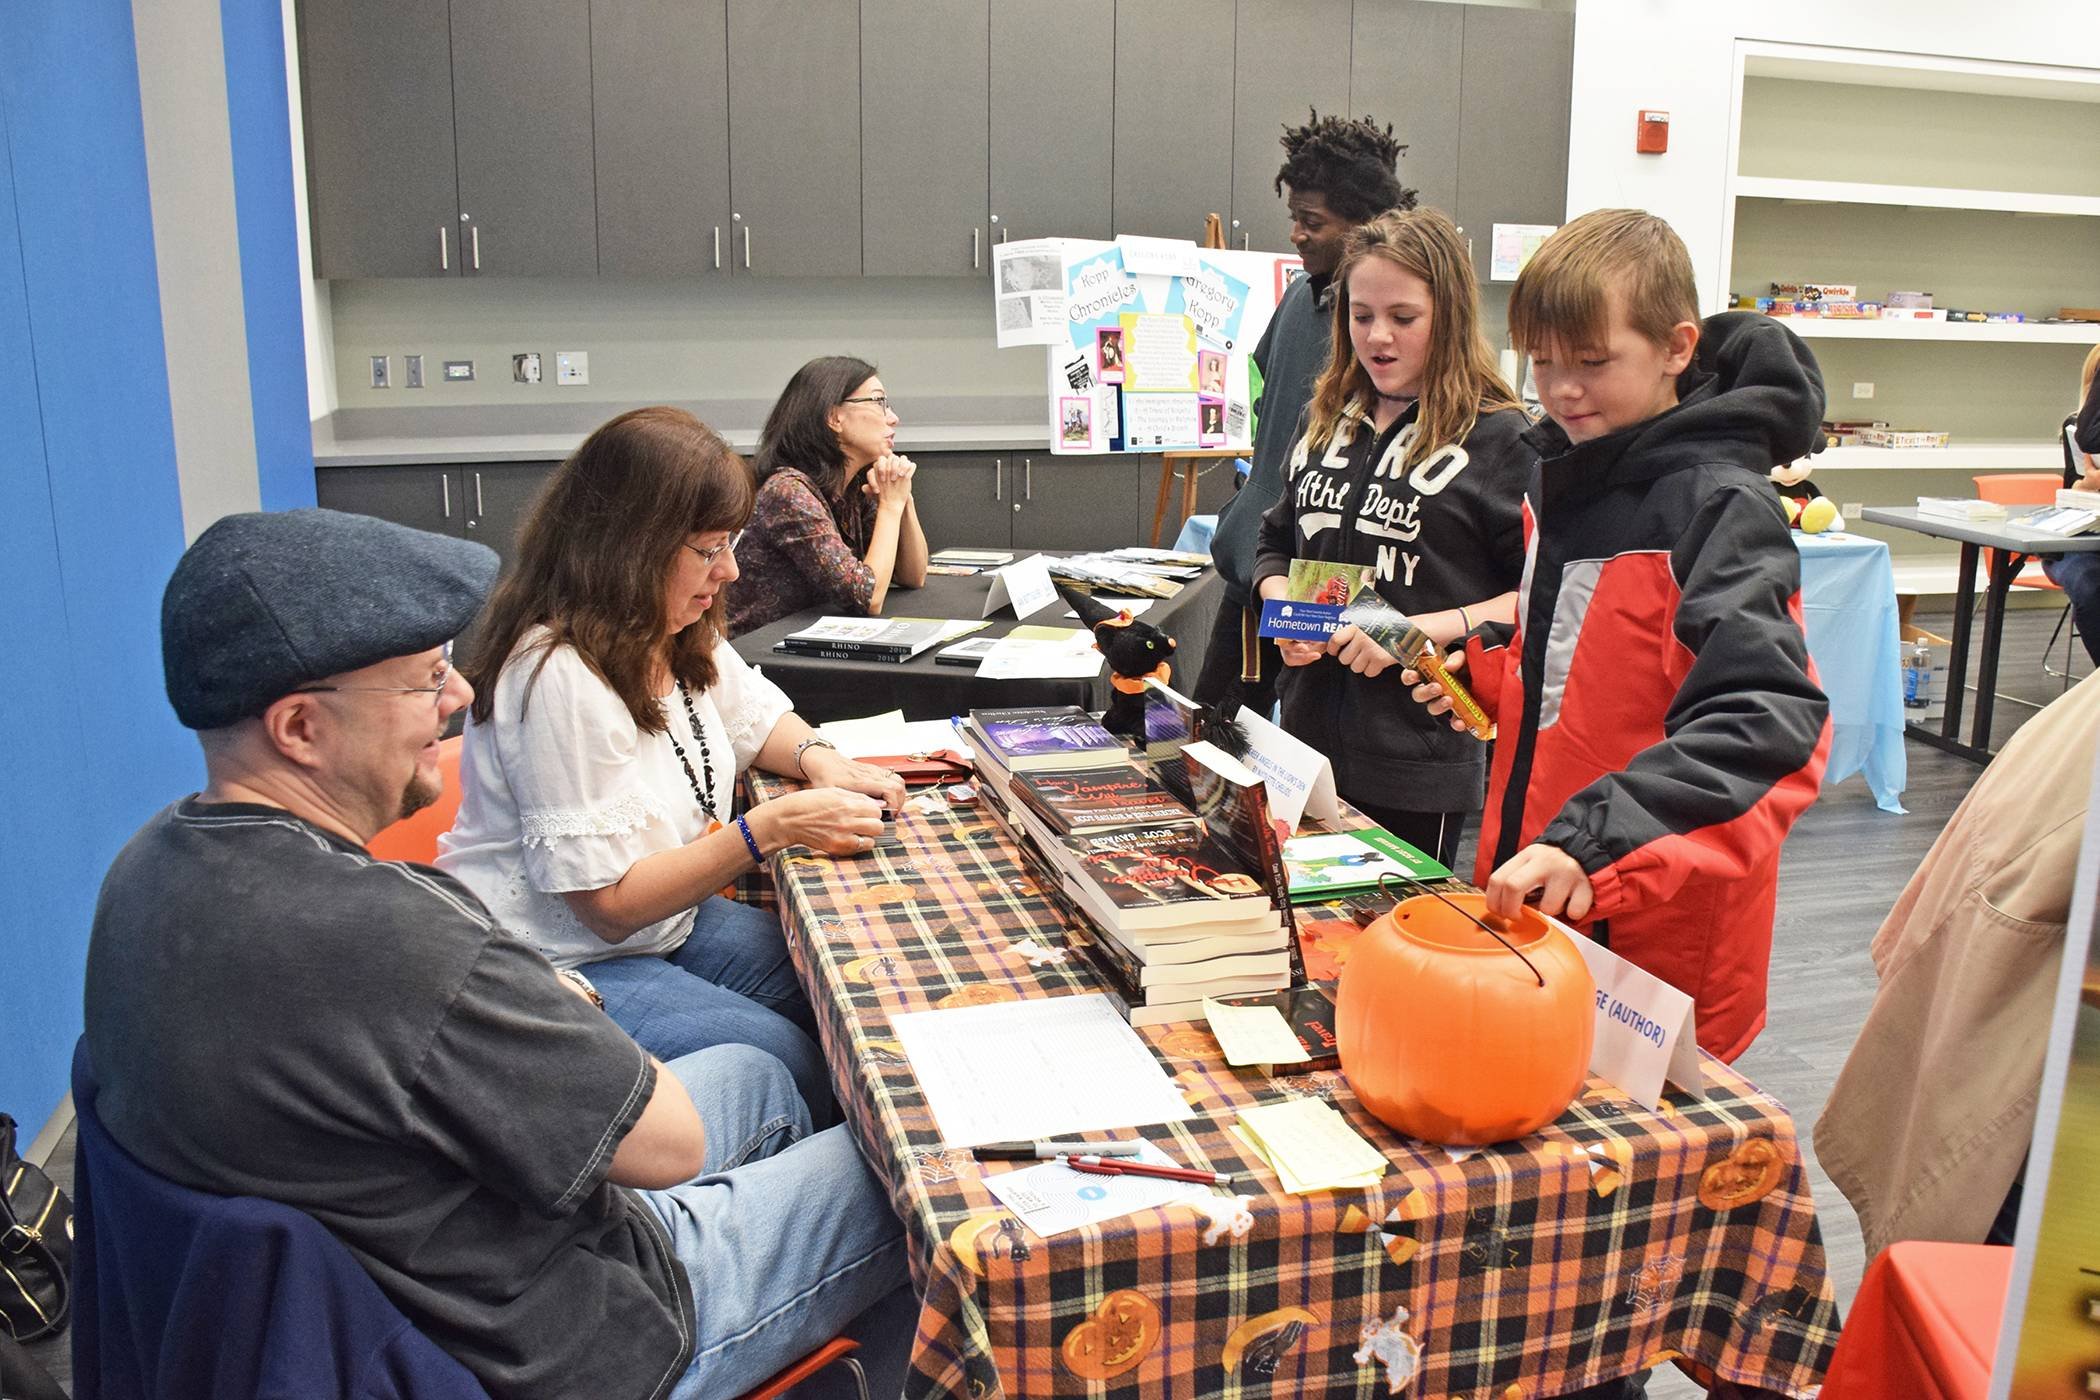 Authors greet children at the 2017 Indie Author Day at the Schaumburg Library. This year's event will take place this Saturday, Oct. 13, from 11 a.m. to 2 p.m. Books for all ages in many genres will be a available for purchase and signing. Susan Miura